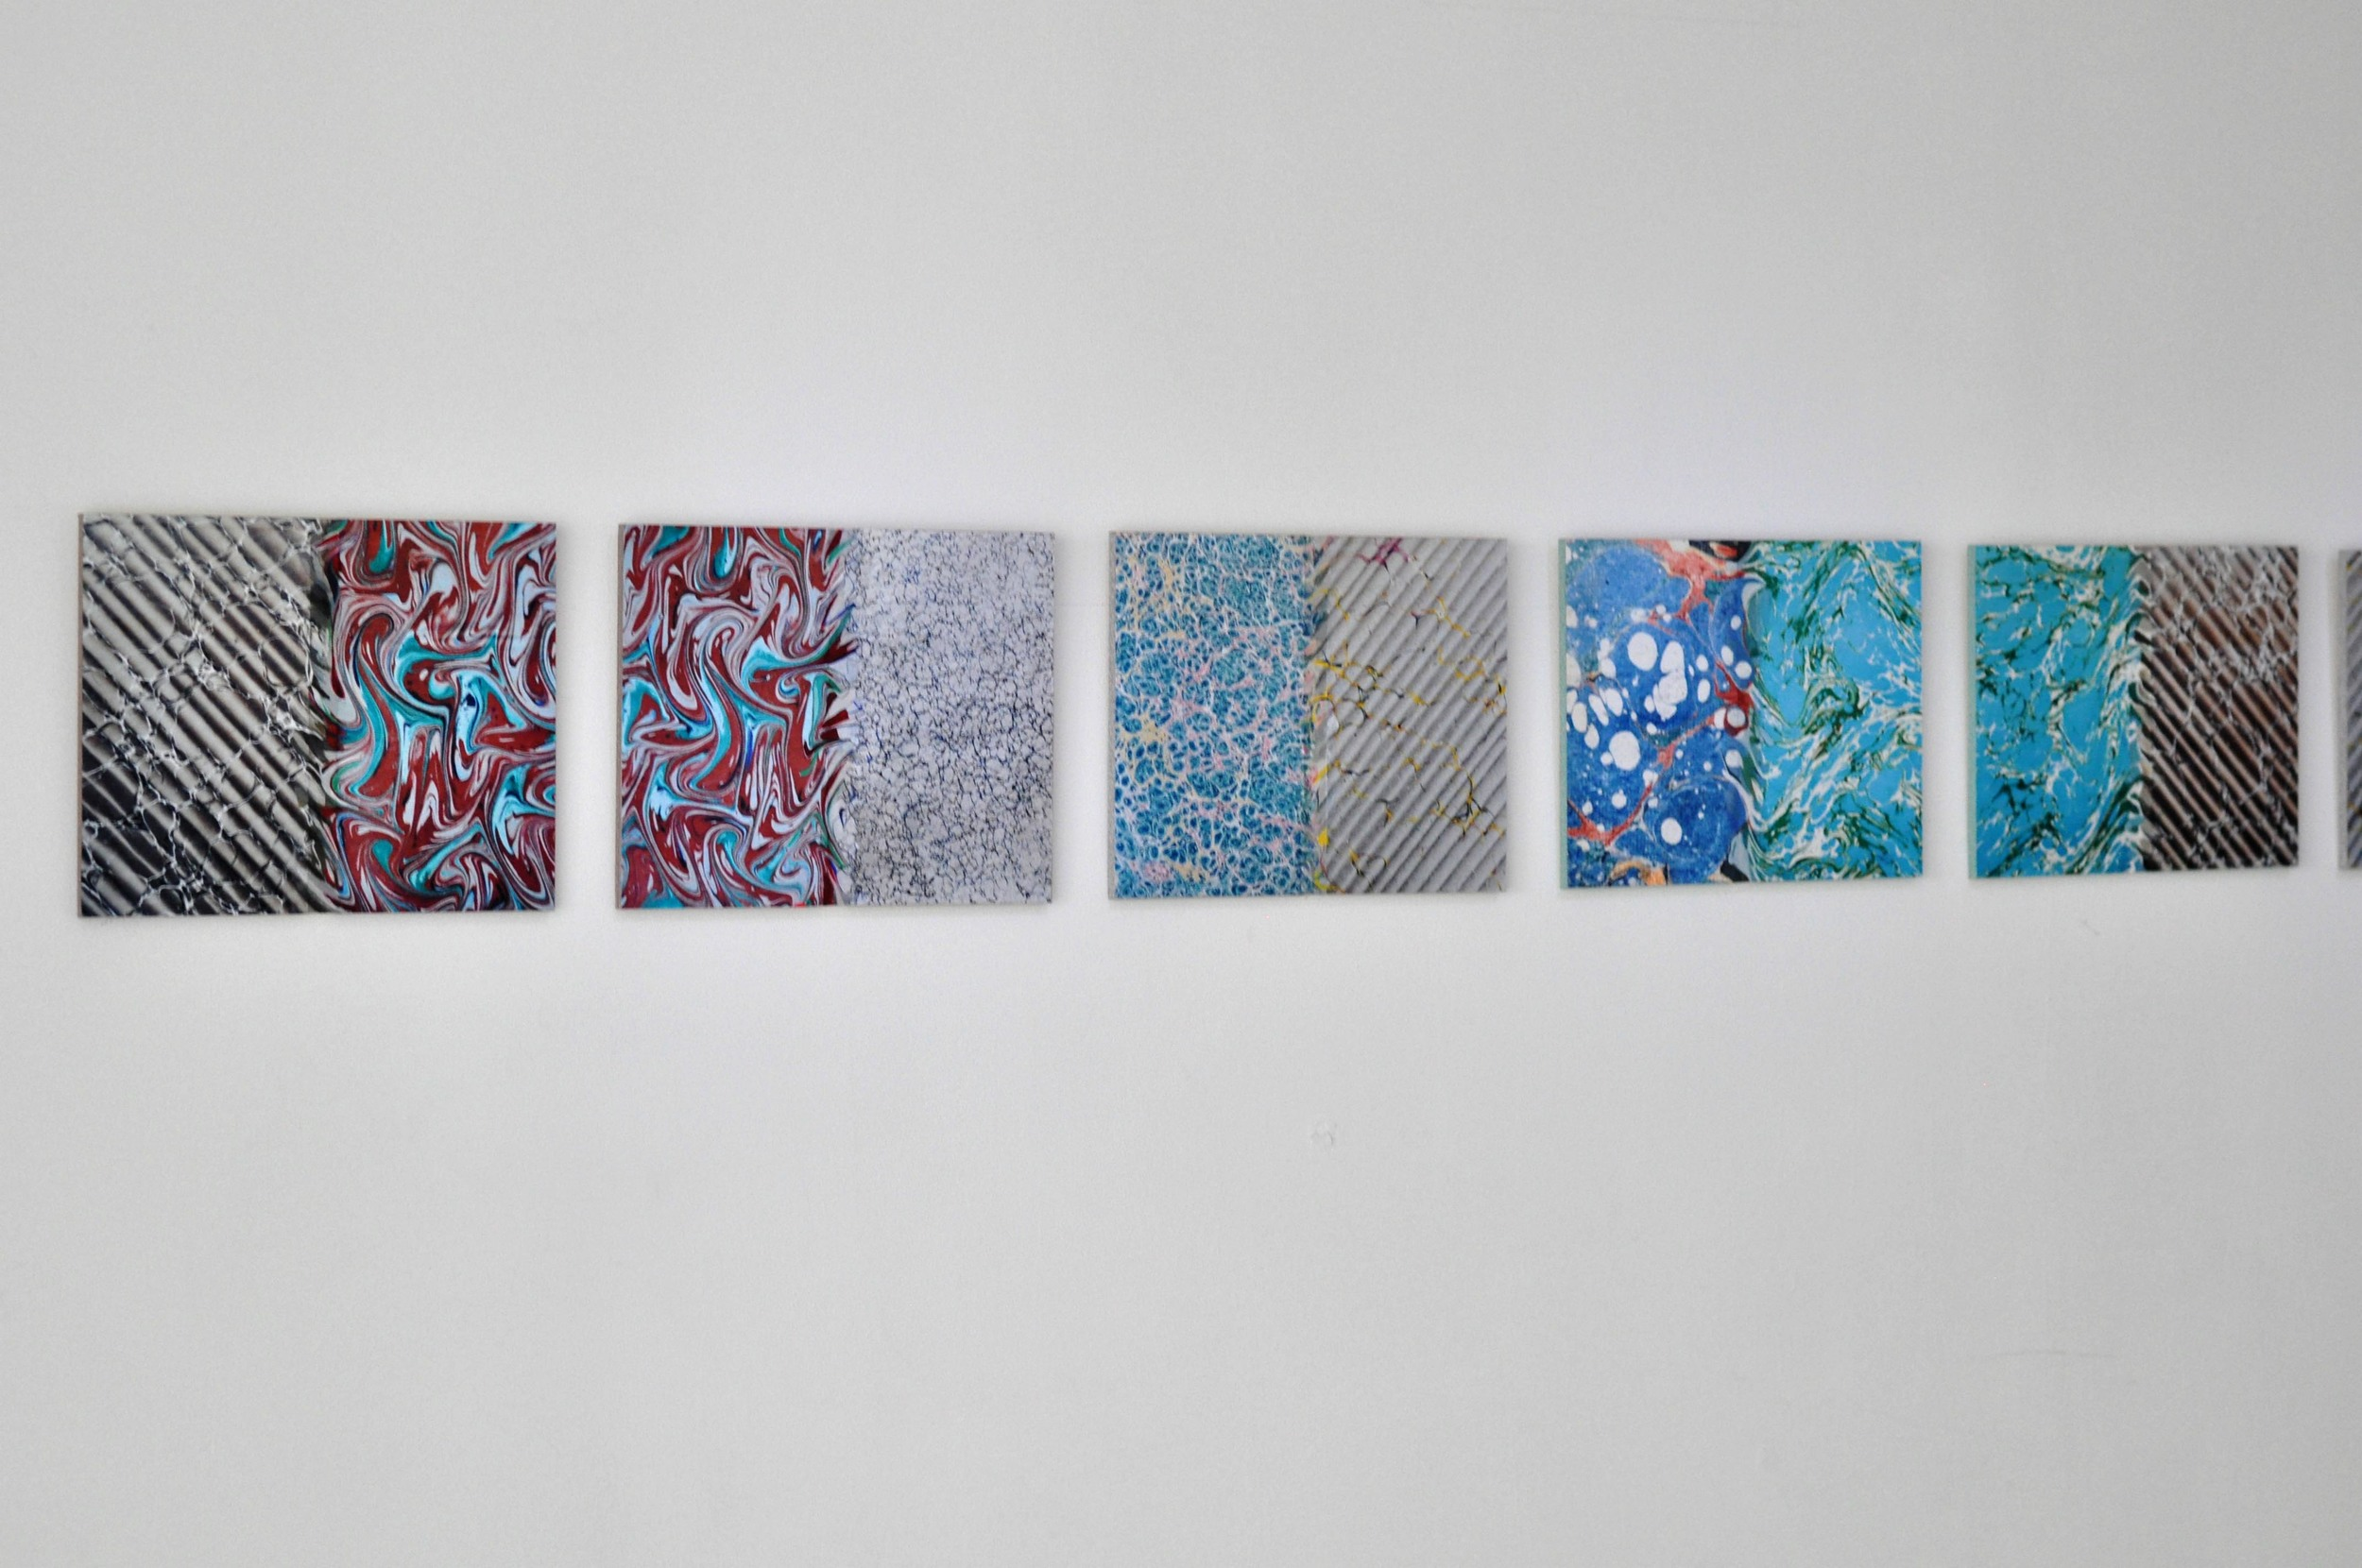 Ecritures , 2015 c-print, oil paint, sand paper on wood,   series of 7  34 x 27 x 1 cm each